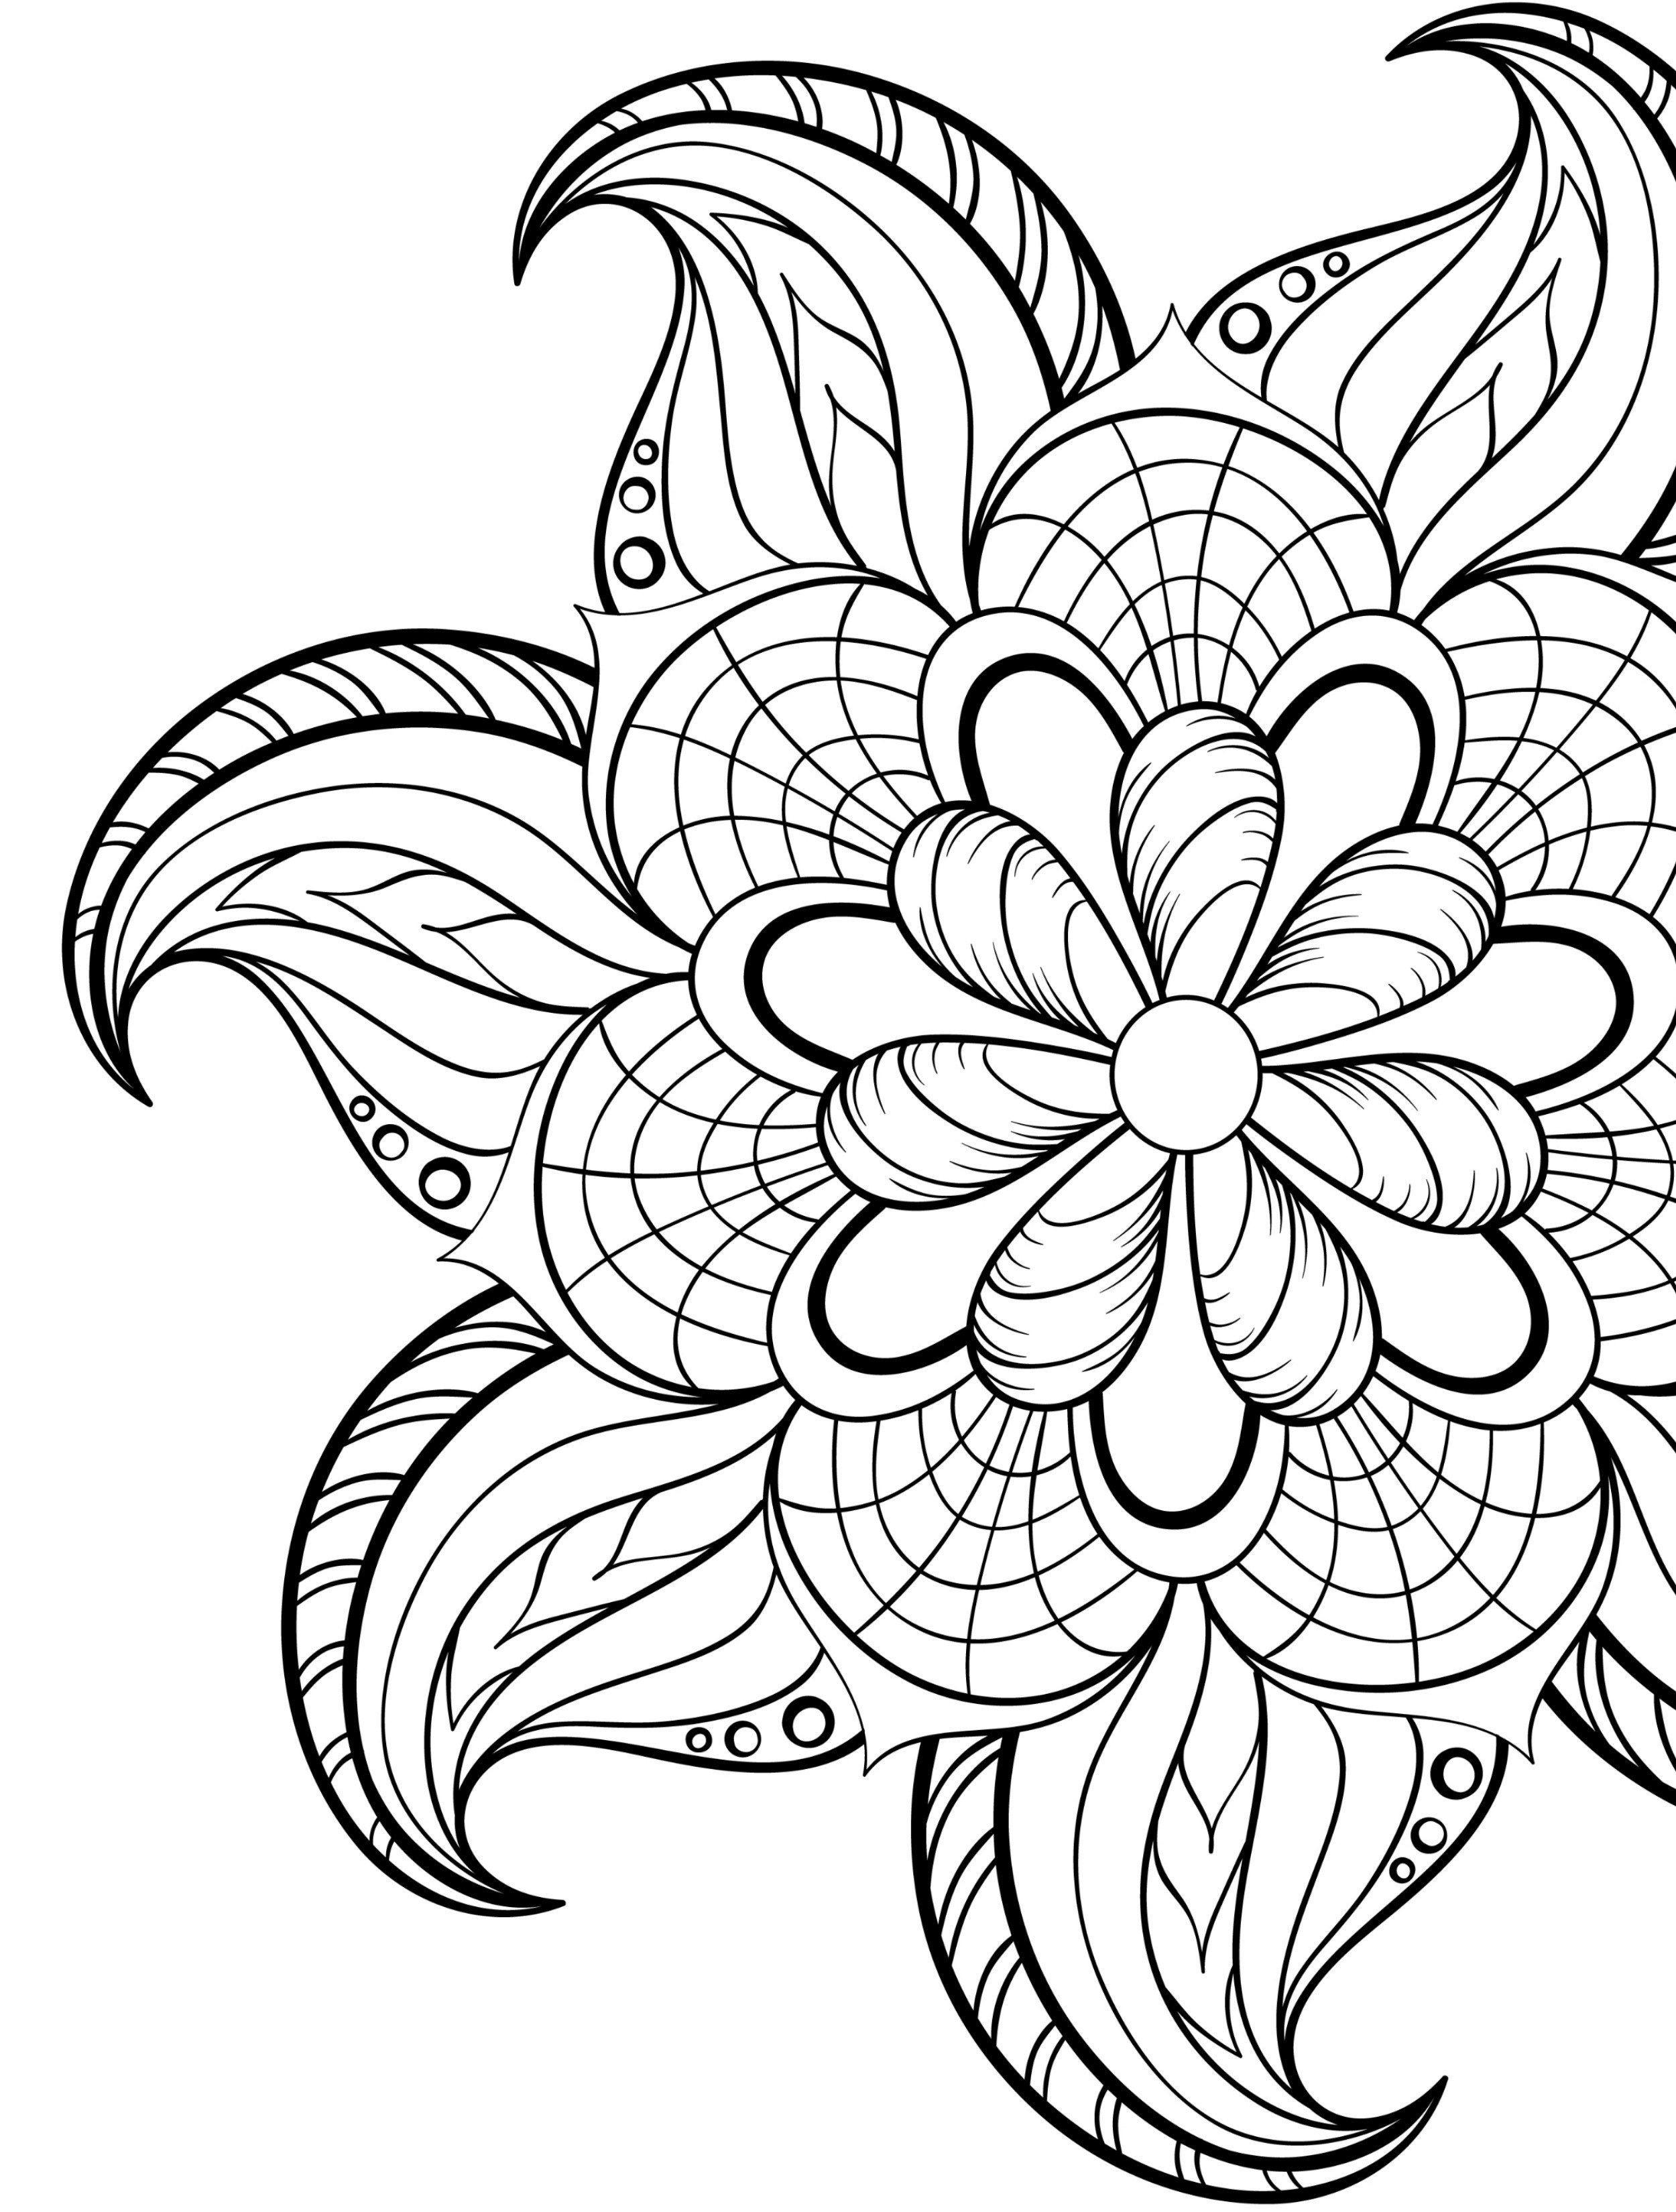 Simple Relaxing Coloring Pages Background